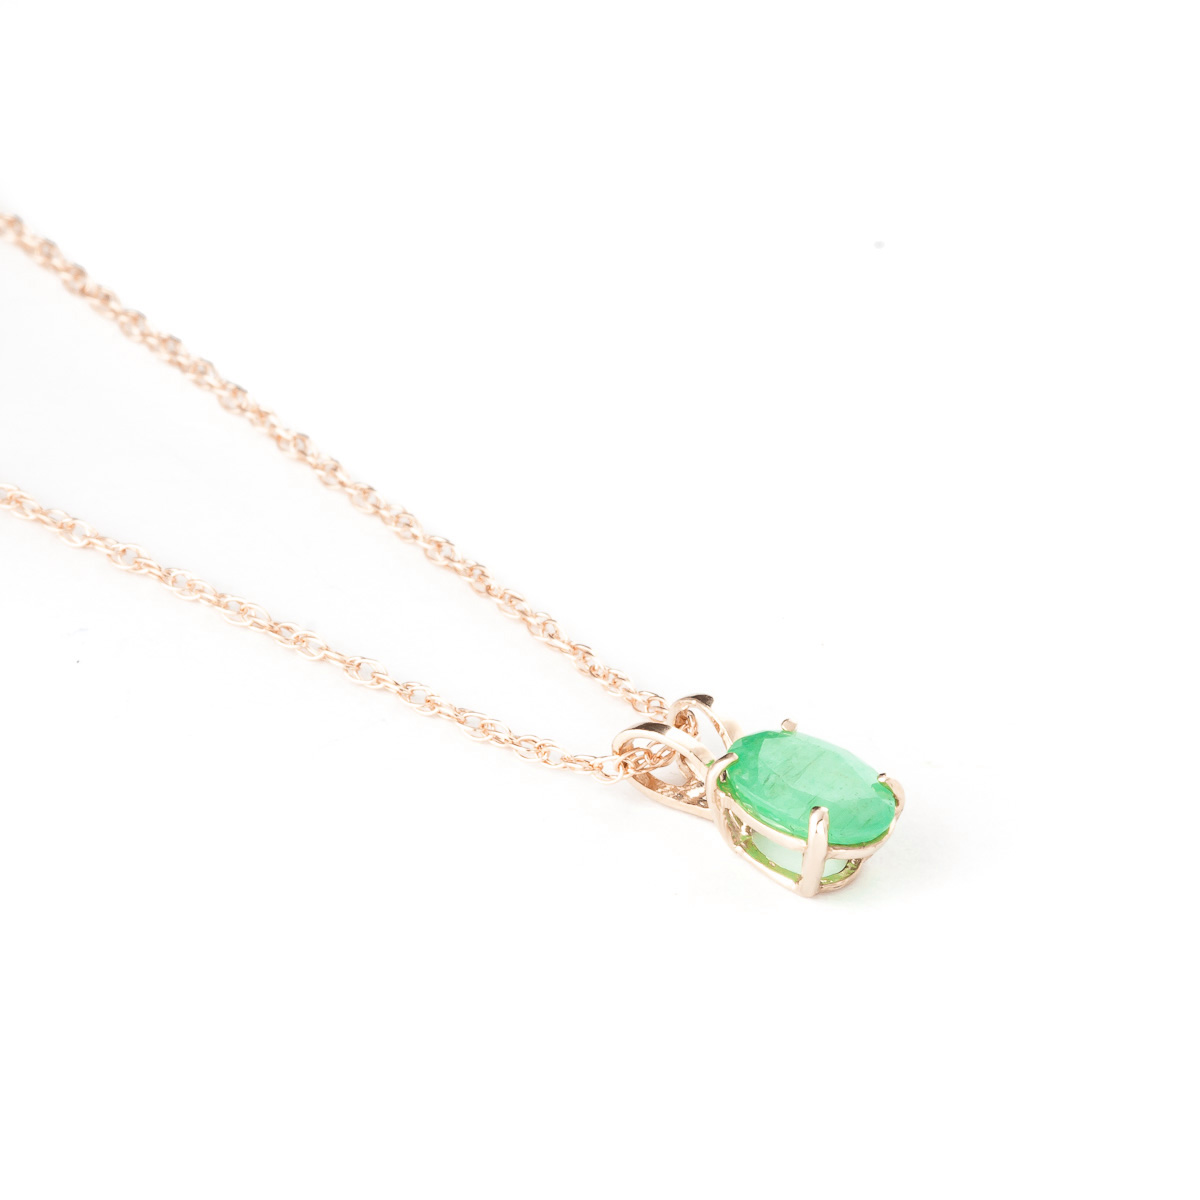 Oval Cut Emerald Pendant Necklace 0.75ct in 9ct Rose Gold